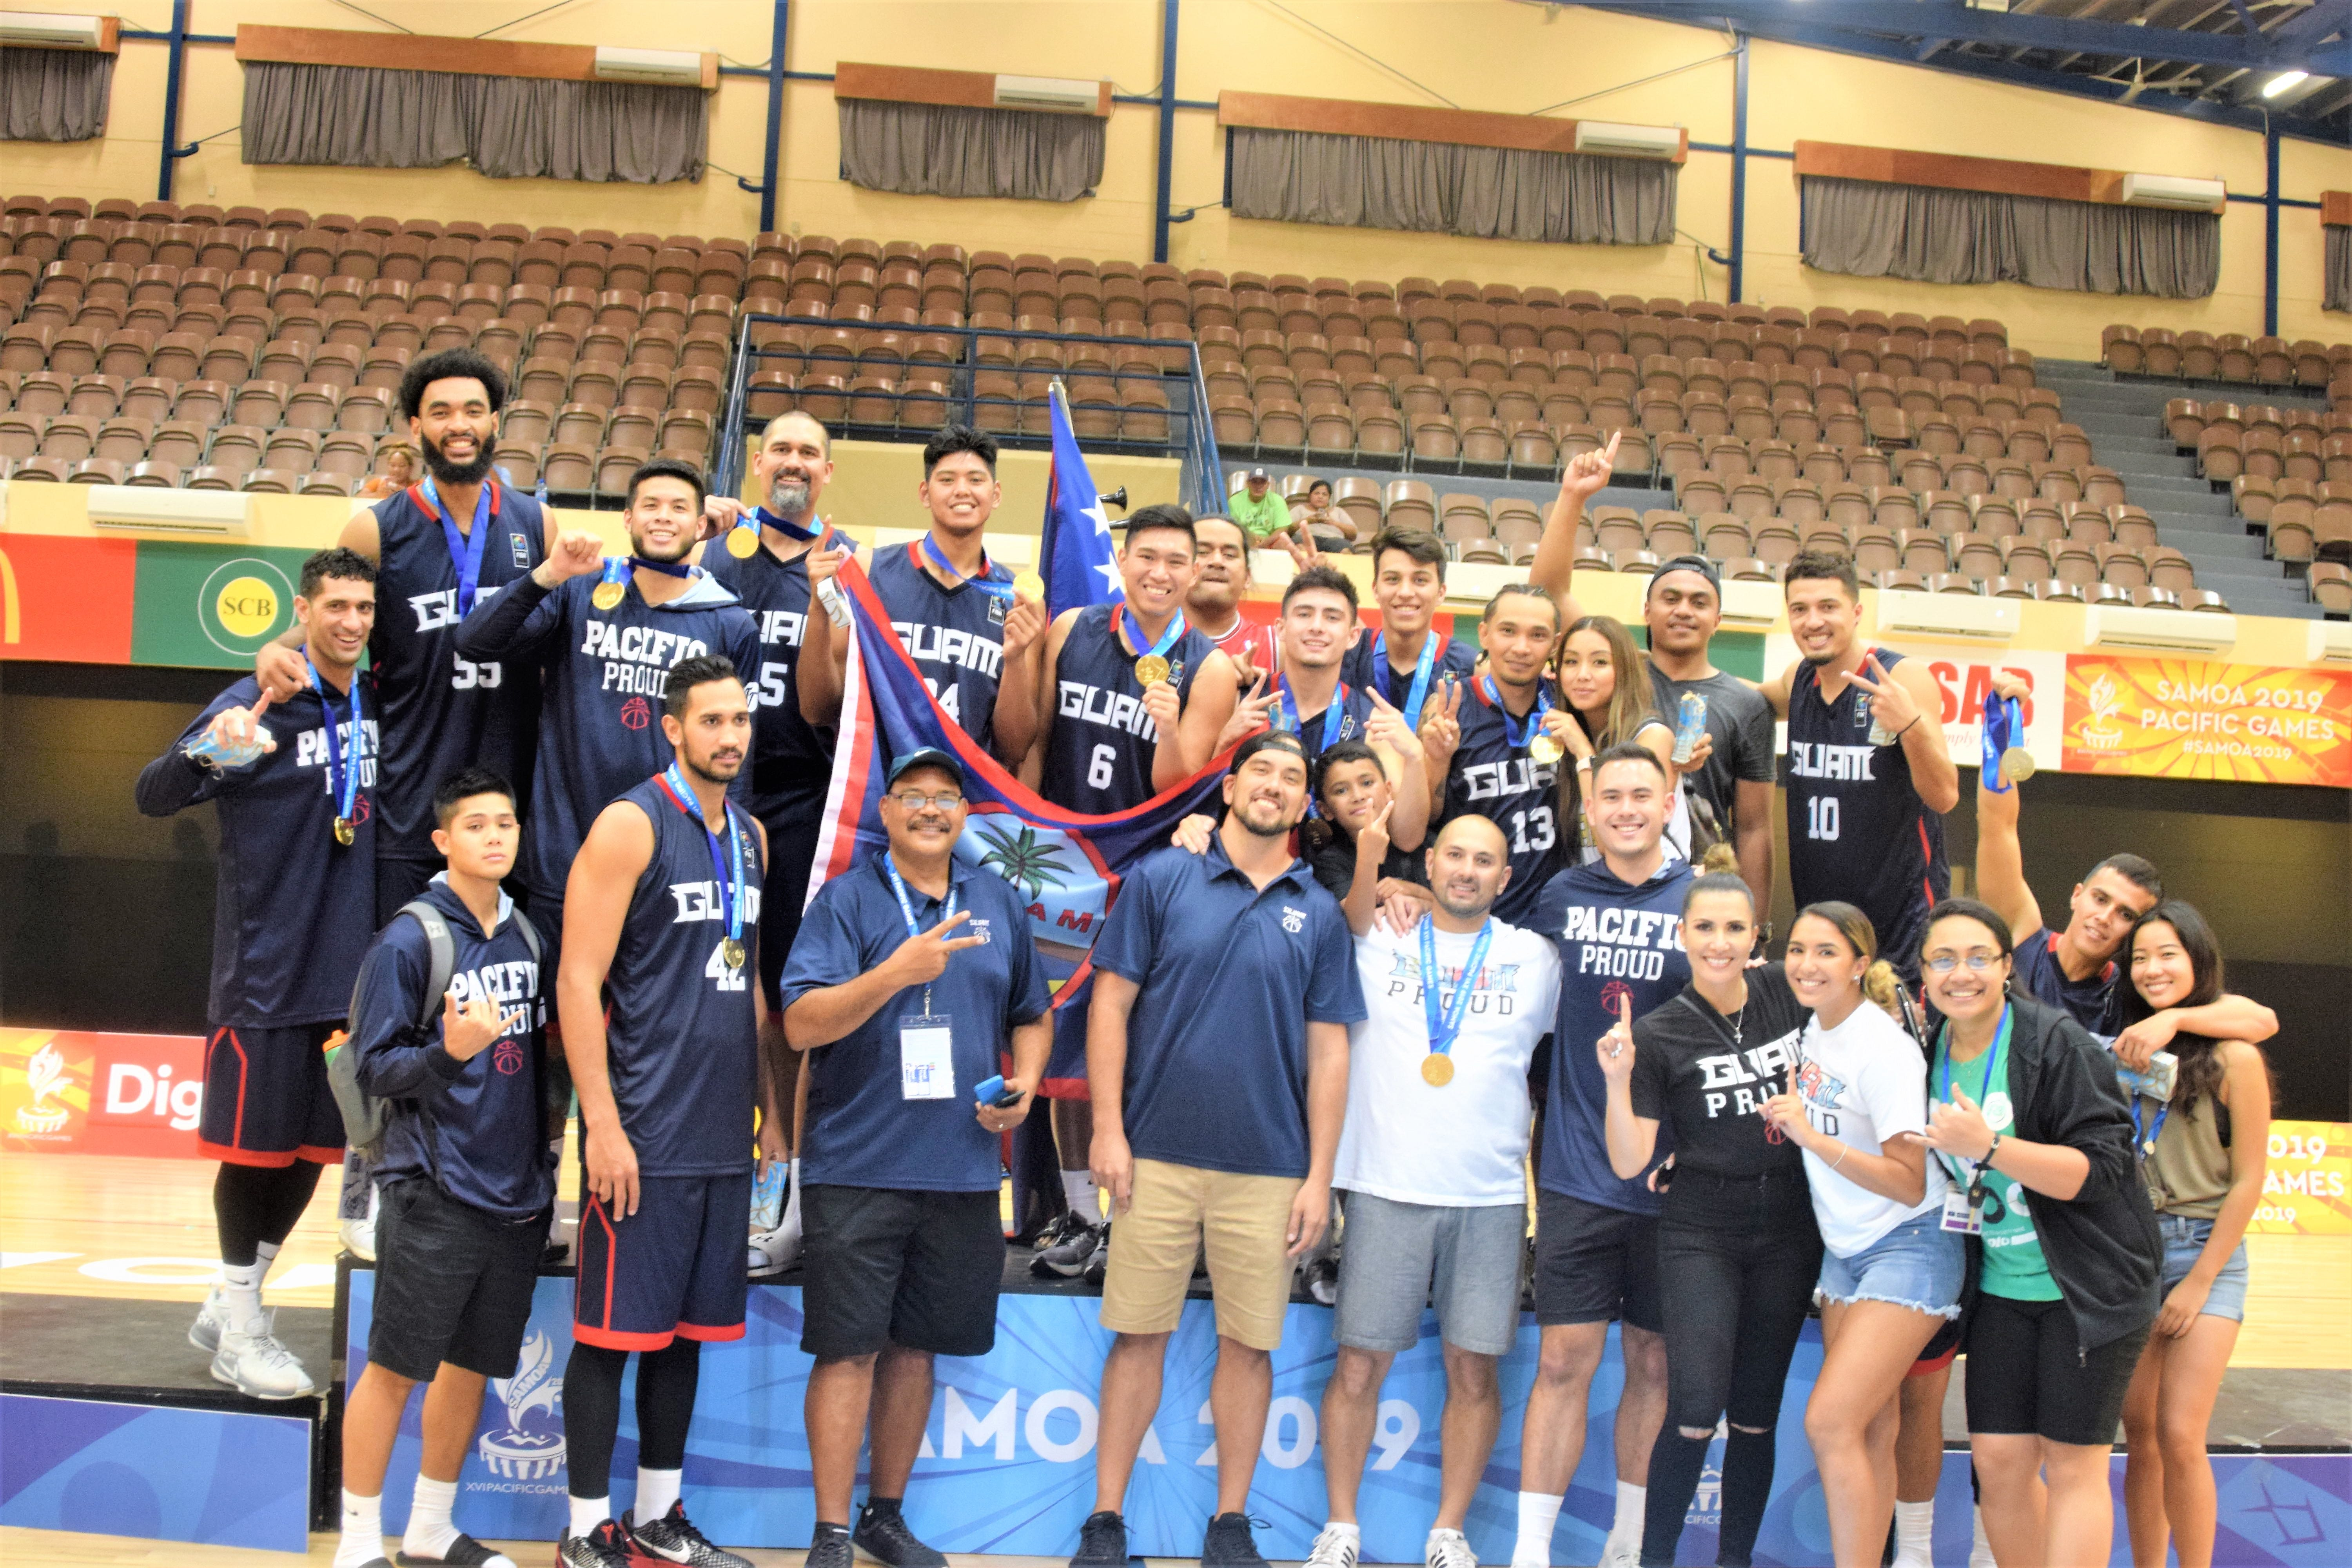 Guam successfully defended its gold medal at the XVI Pacific Games in Samoa with a convincing 83-74 victory over a tough Tahiti team. They are pictured following that game in this file photo from July 2019.